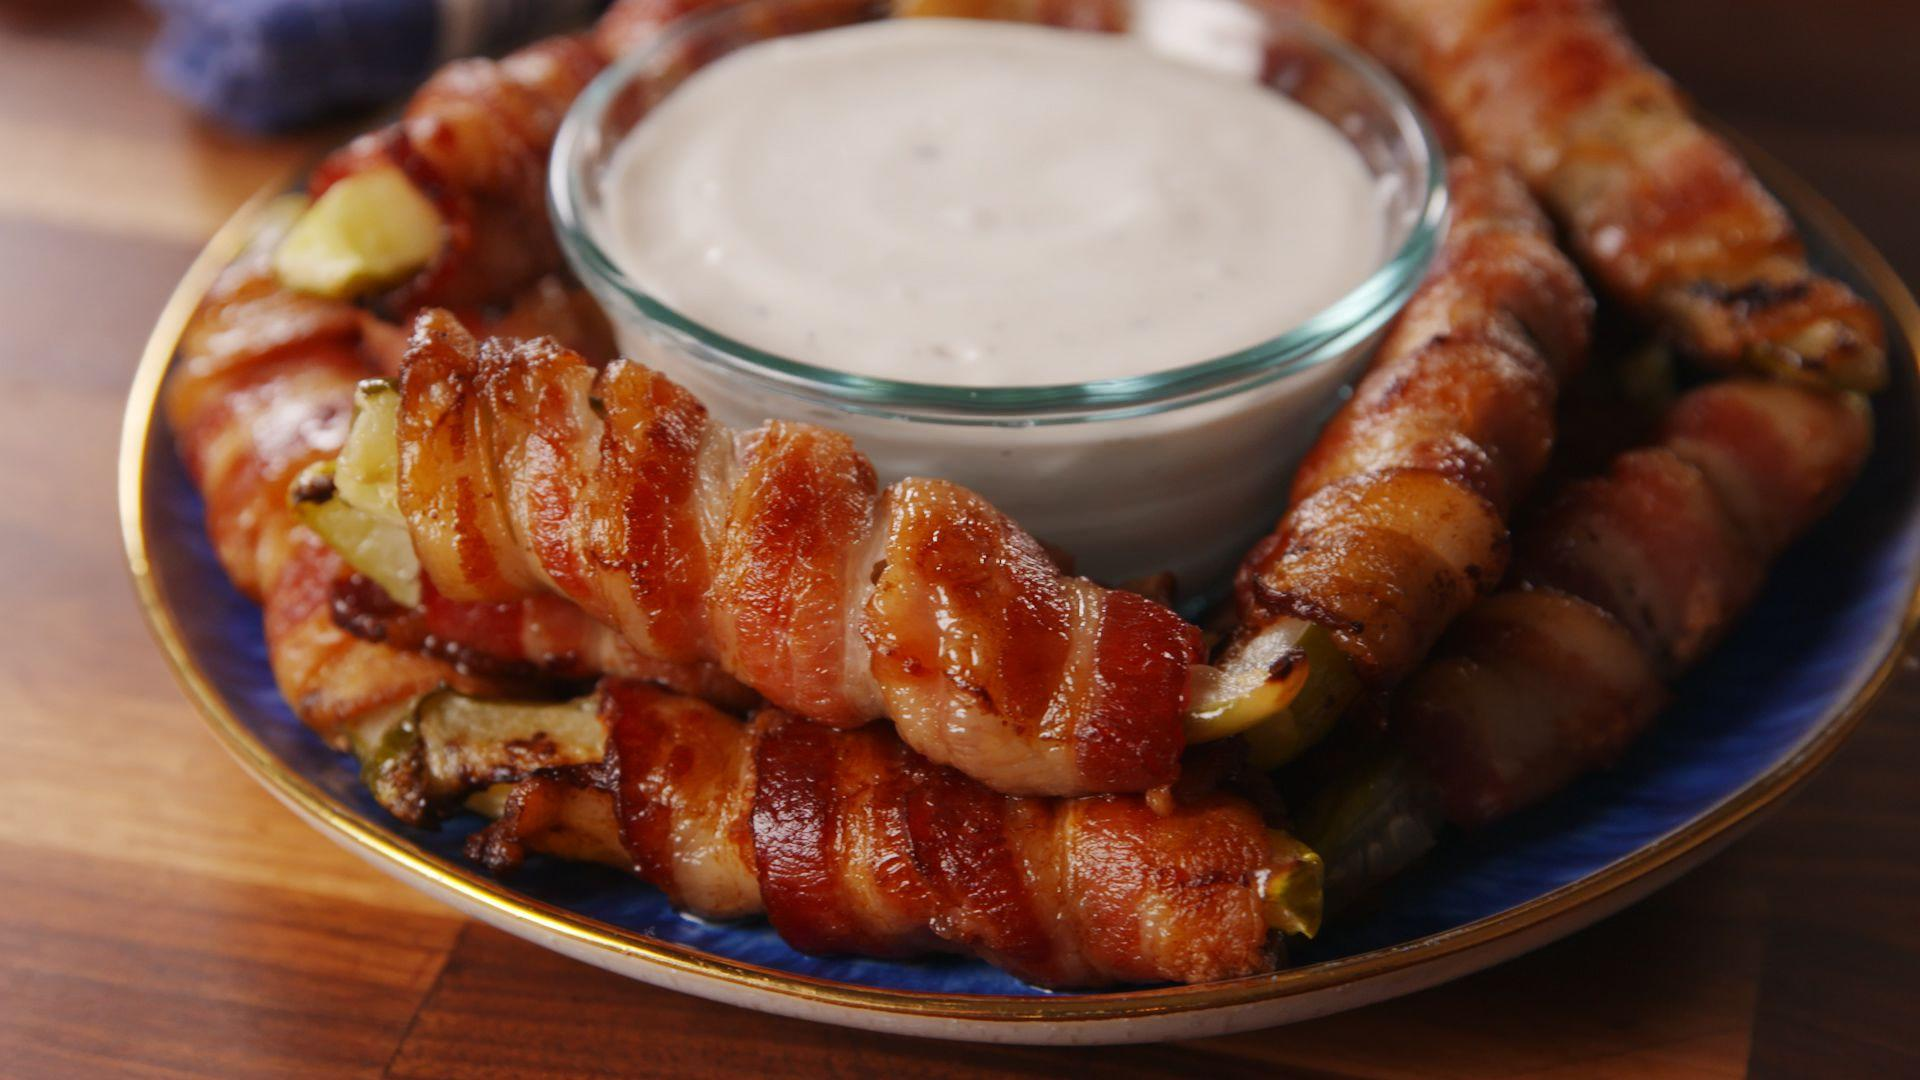 97 Bacon Recipes That Are Seriously Addictive